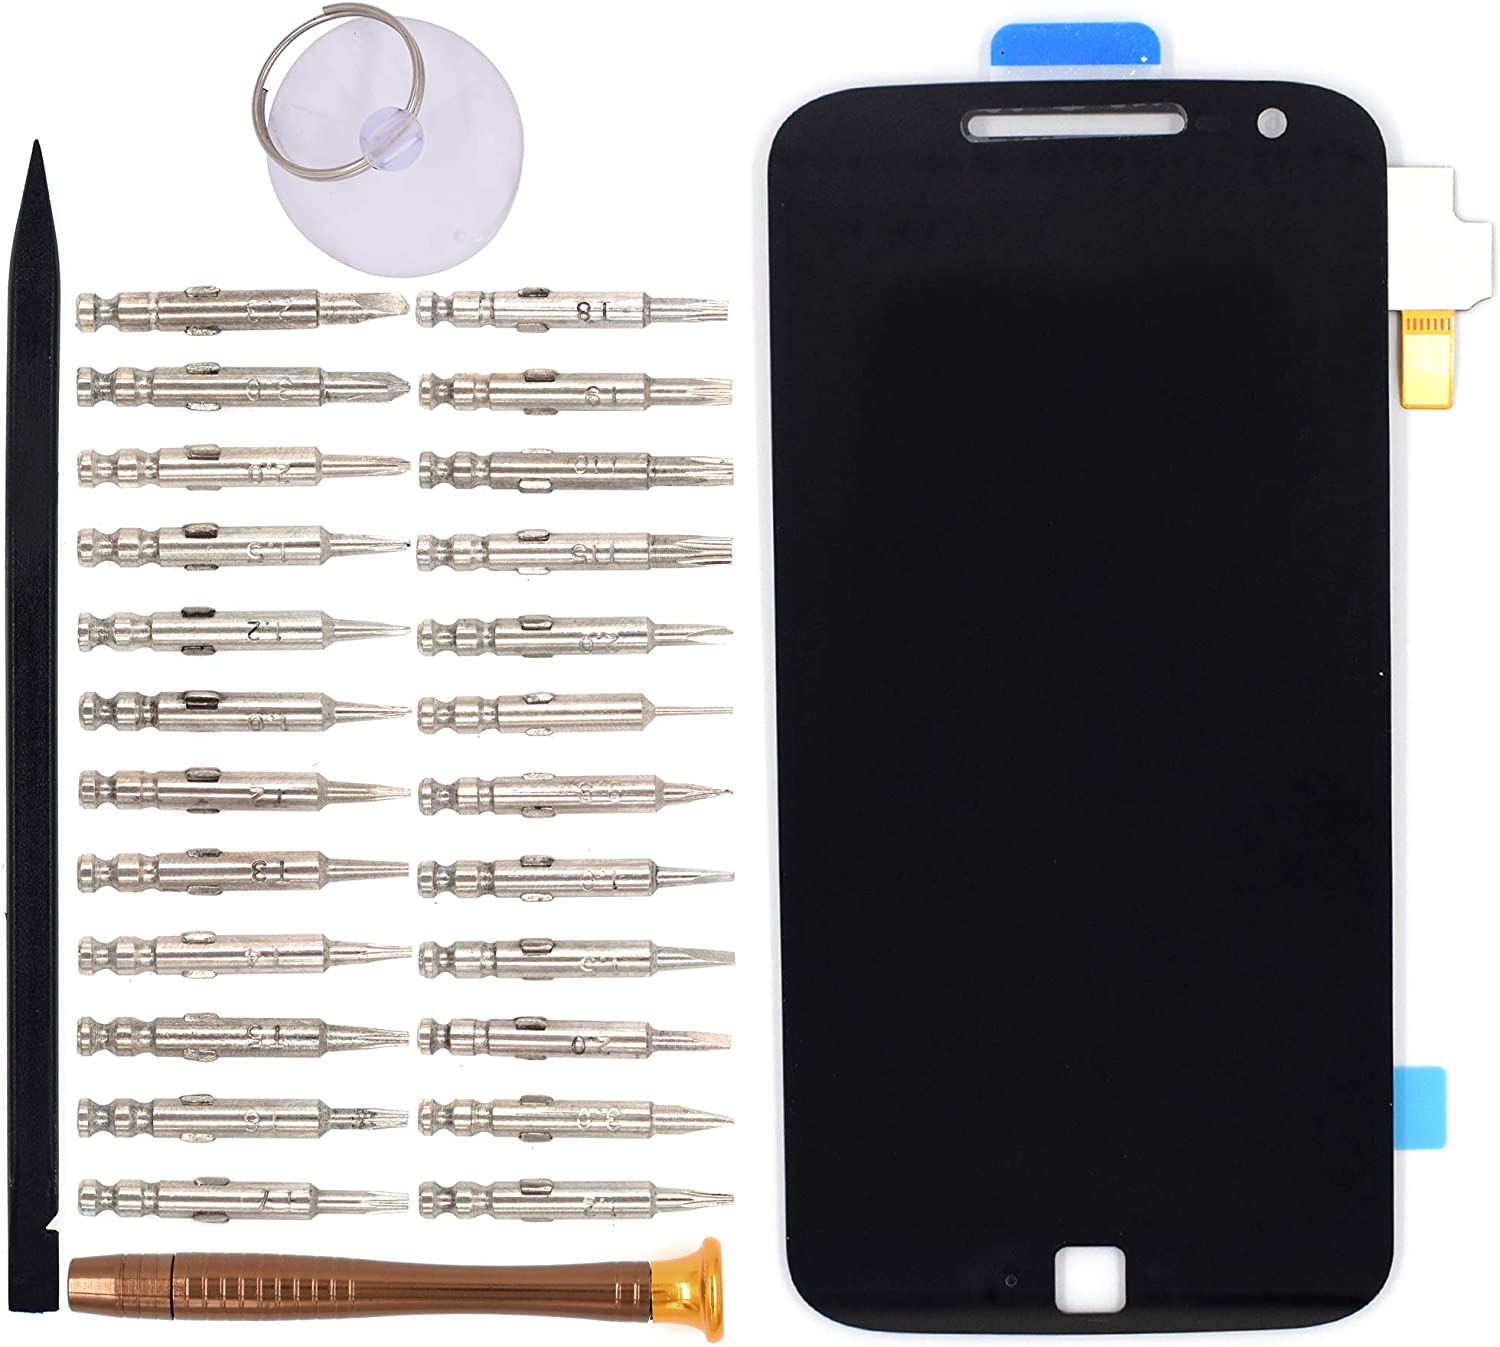 LCD Screen Display with Digitizer Touch Panel Without Bezel Frame for Motorola Moto G4 Plus Moto G Plus 4th Gen XT1641 XT1644(Black)